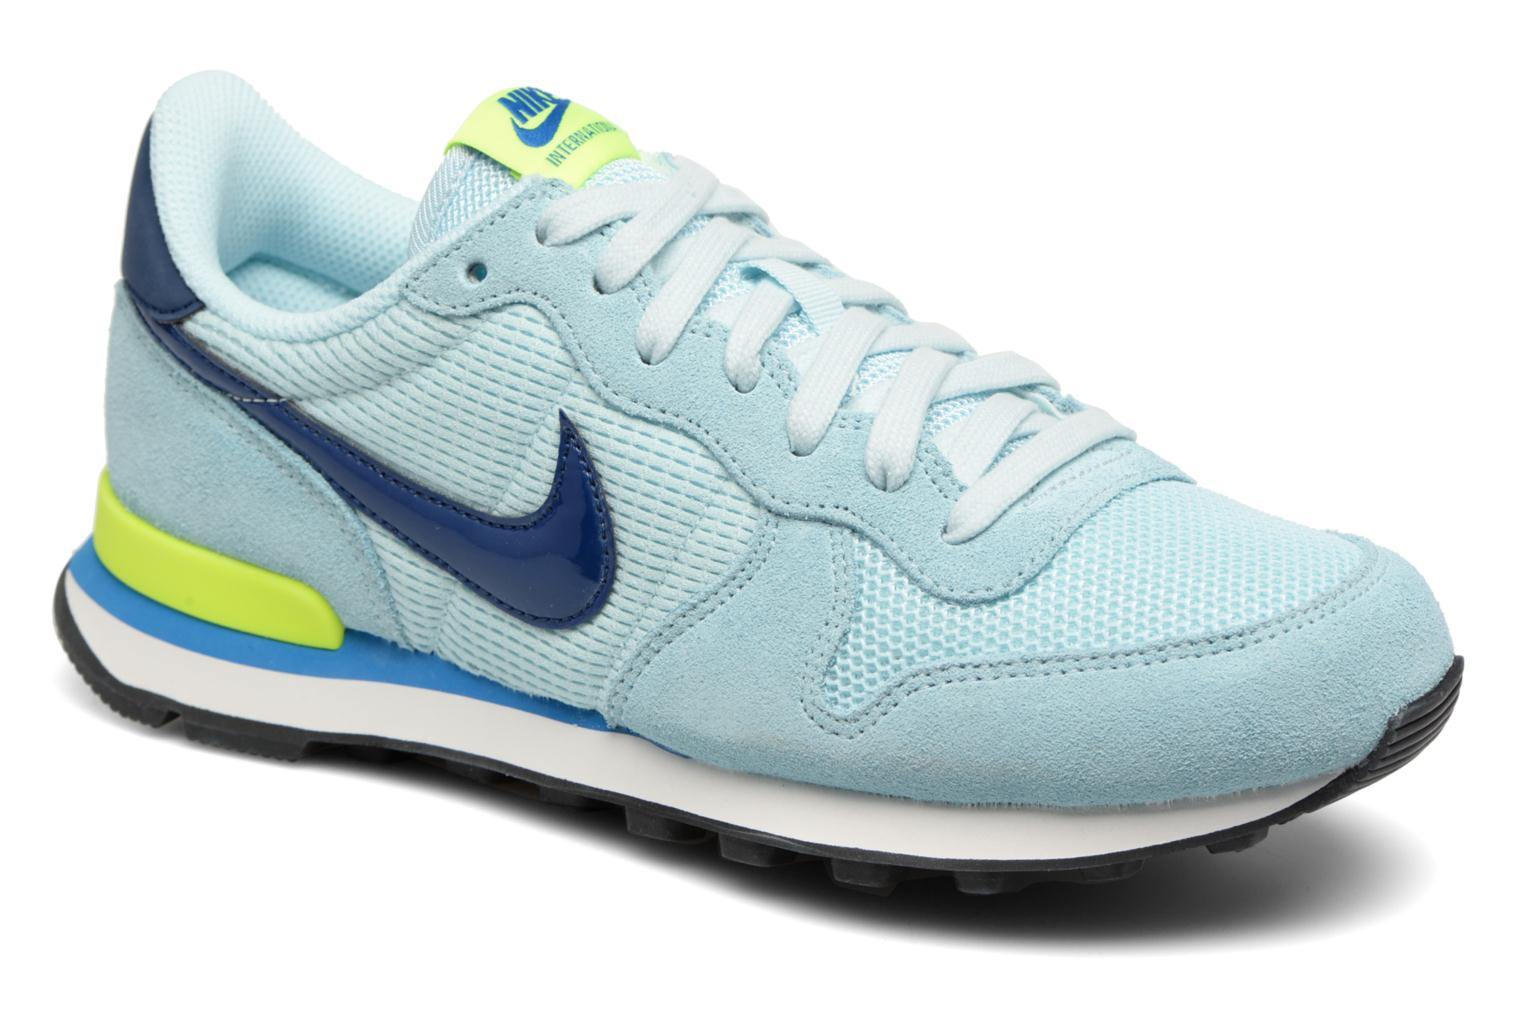 Wmns Internationalist Glcr Blue/Cstl Bl-Vlt-Bl Sprk